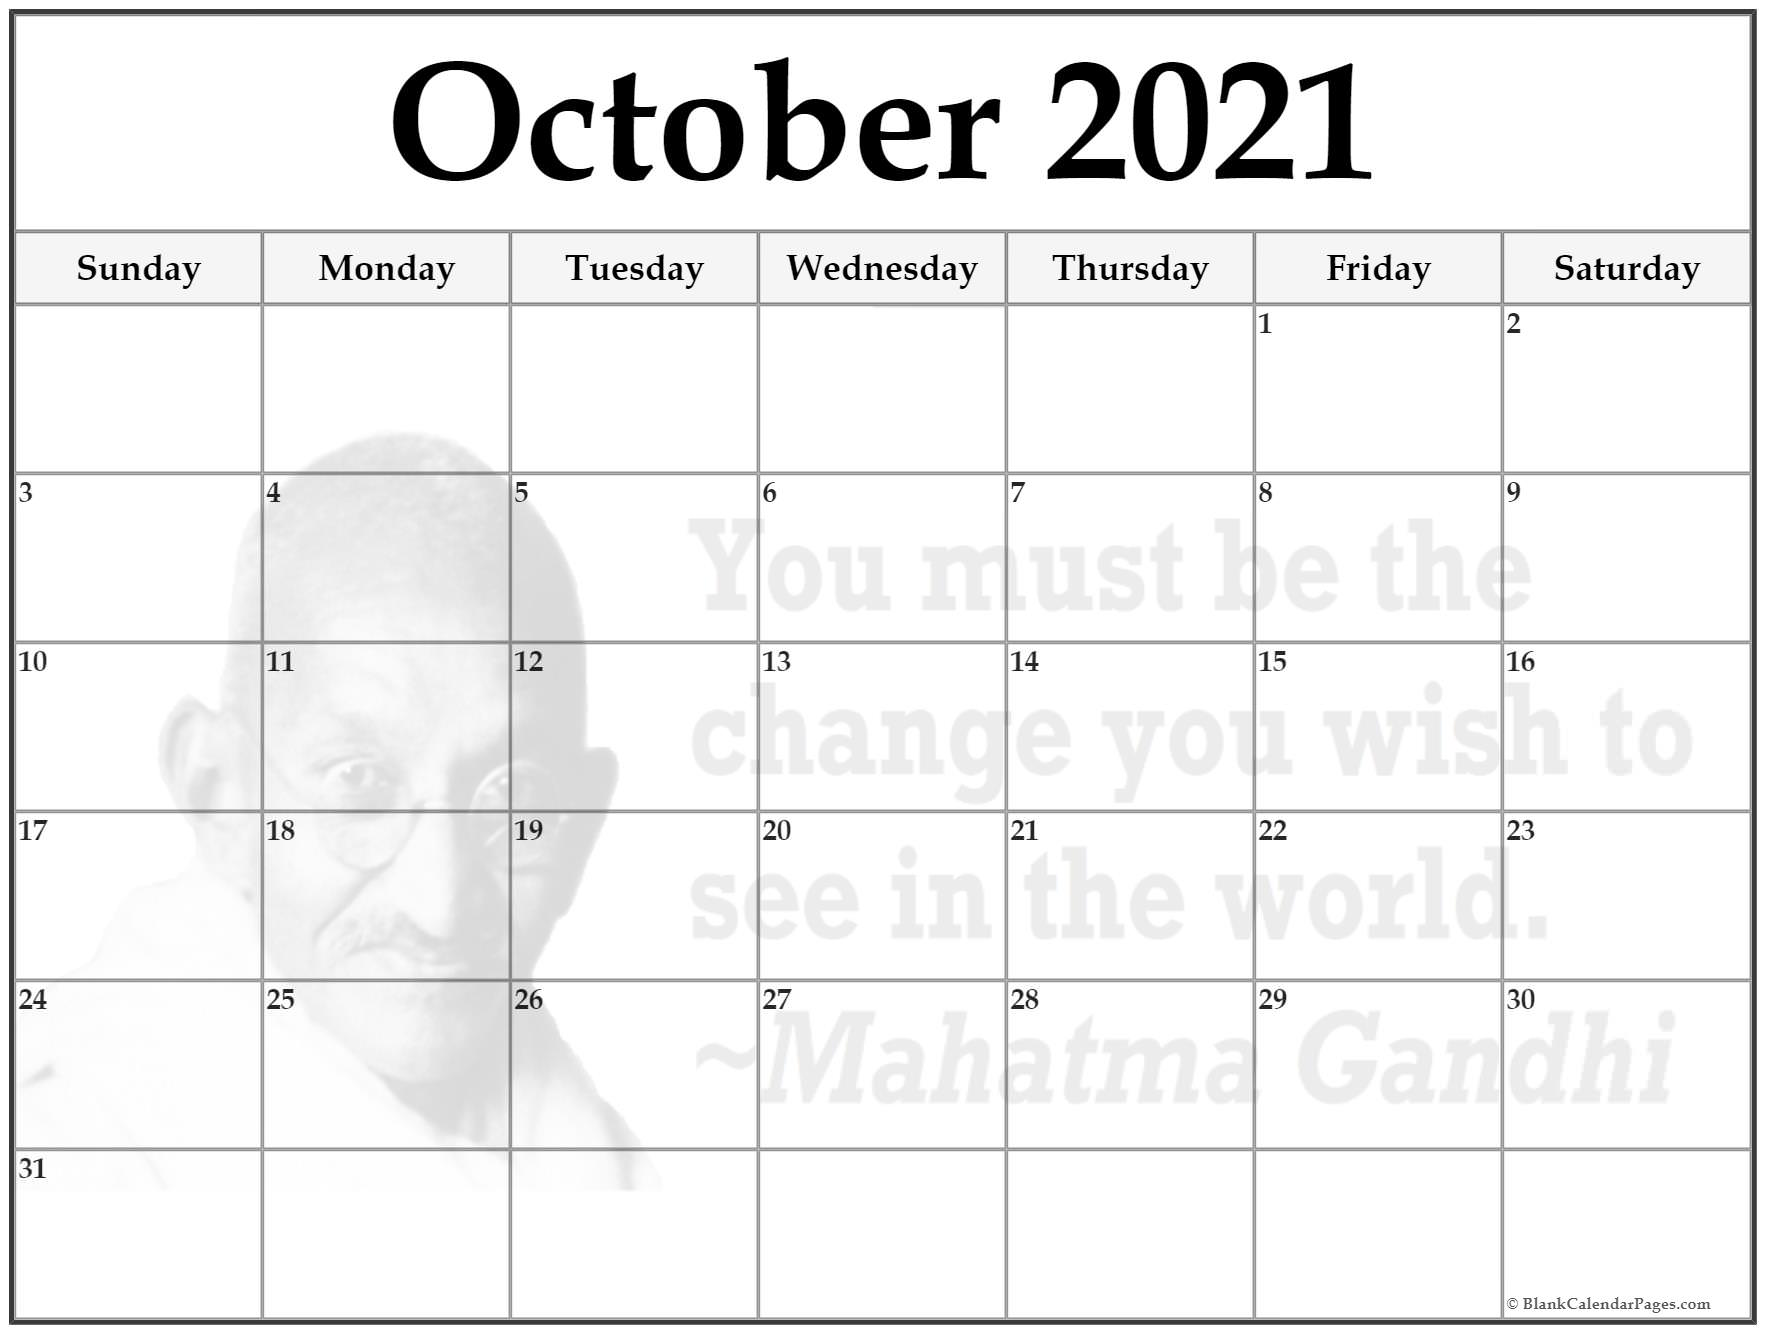 October 2020 monthly calendar template. You must be the change you wish to see in the world. ~Mahatma Gandhi